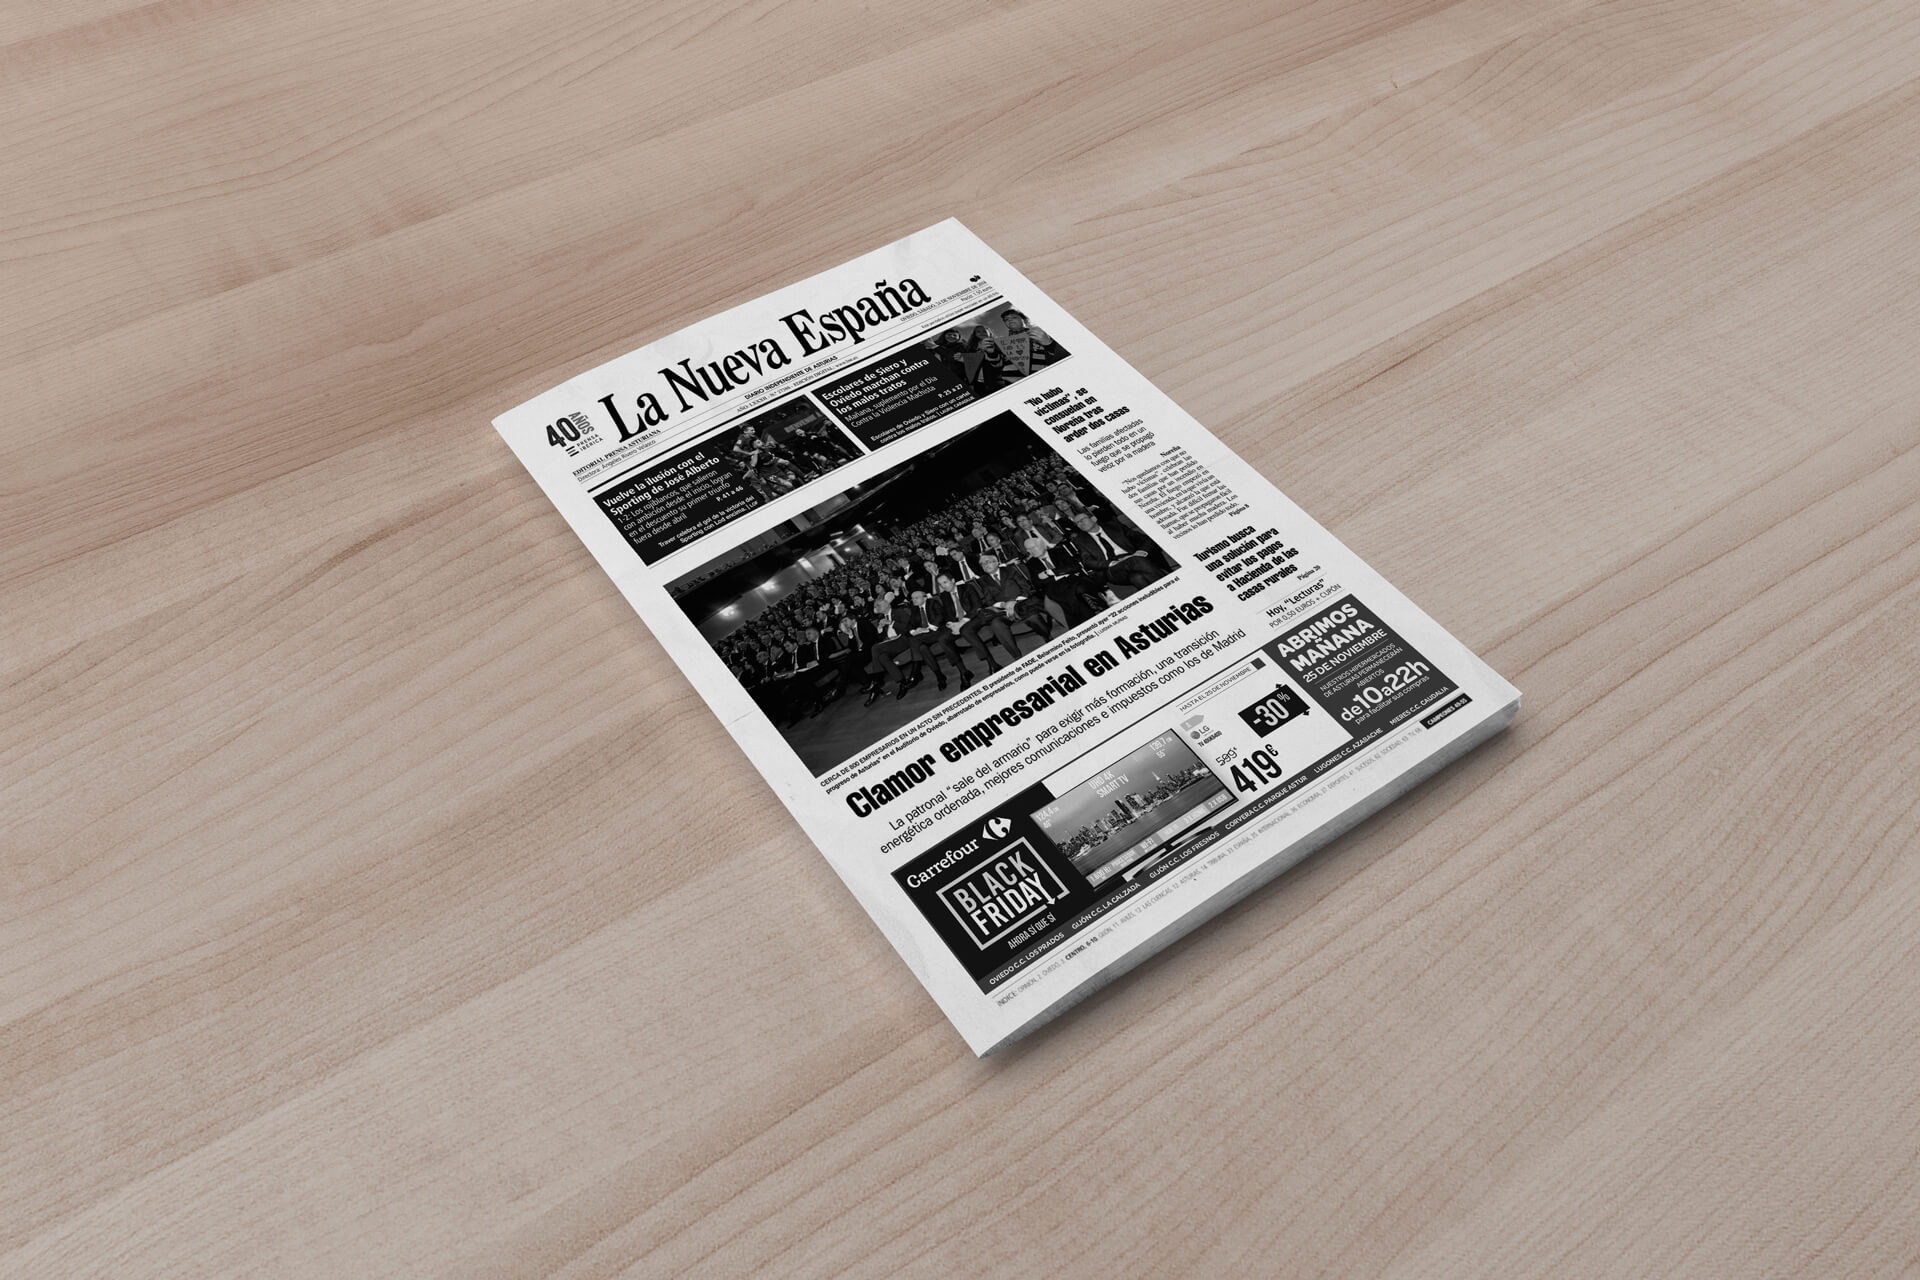 'Black Friday' press advertising design for Carrefour